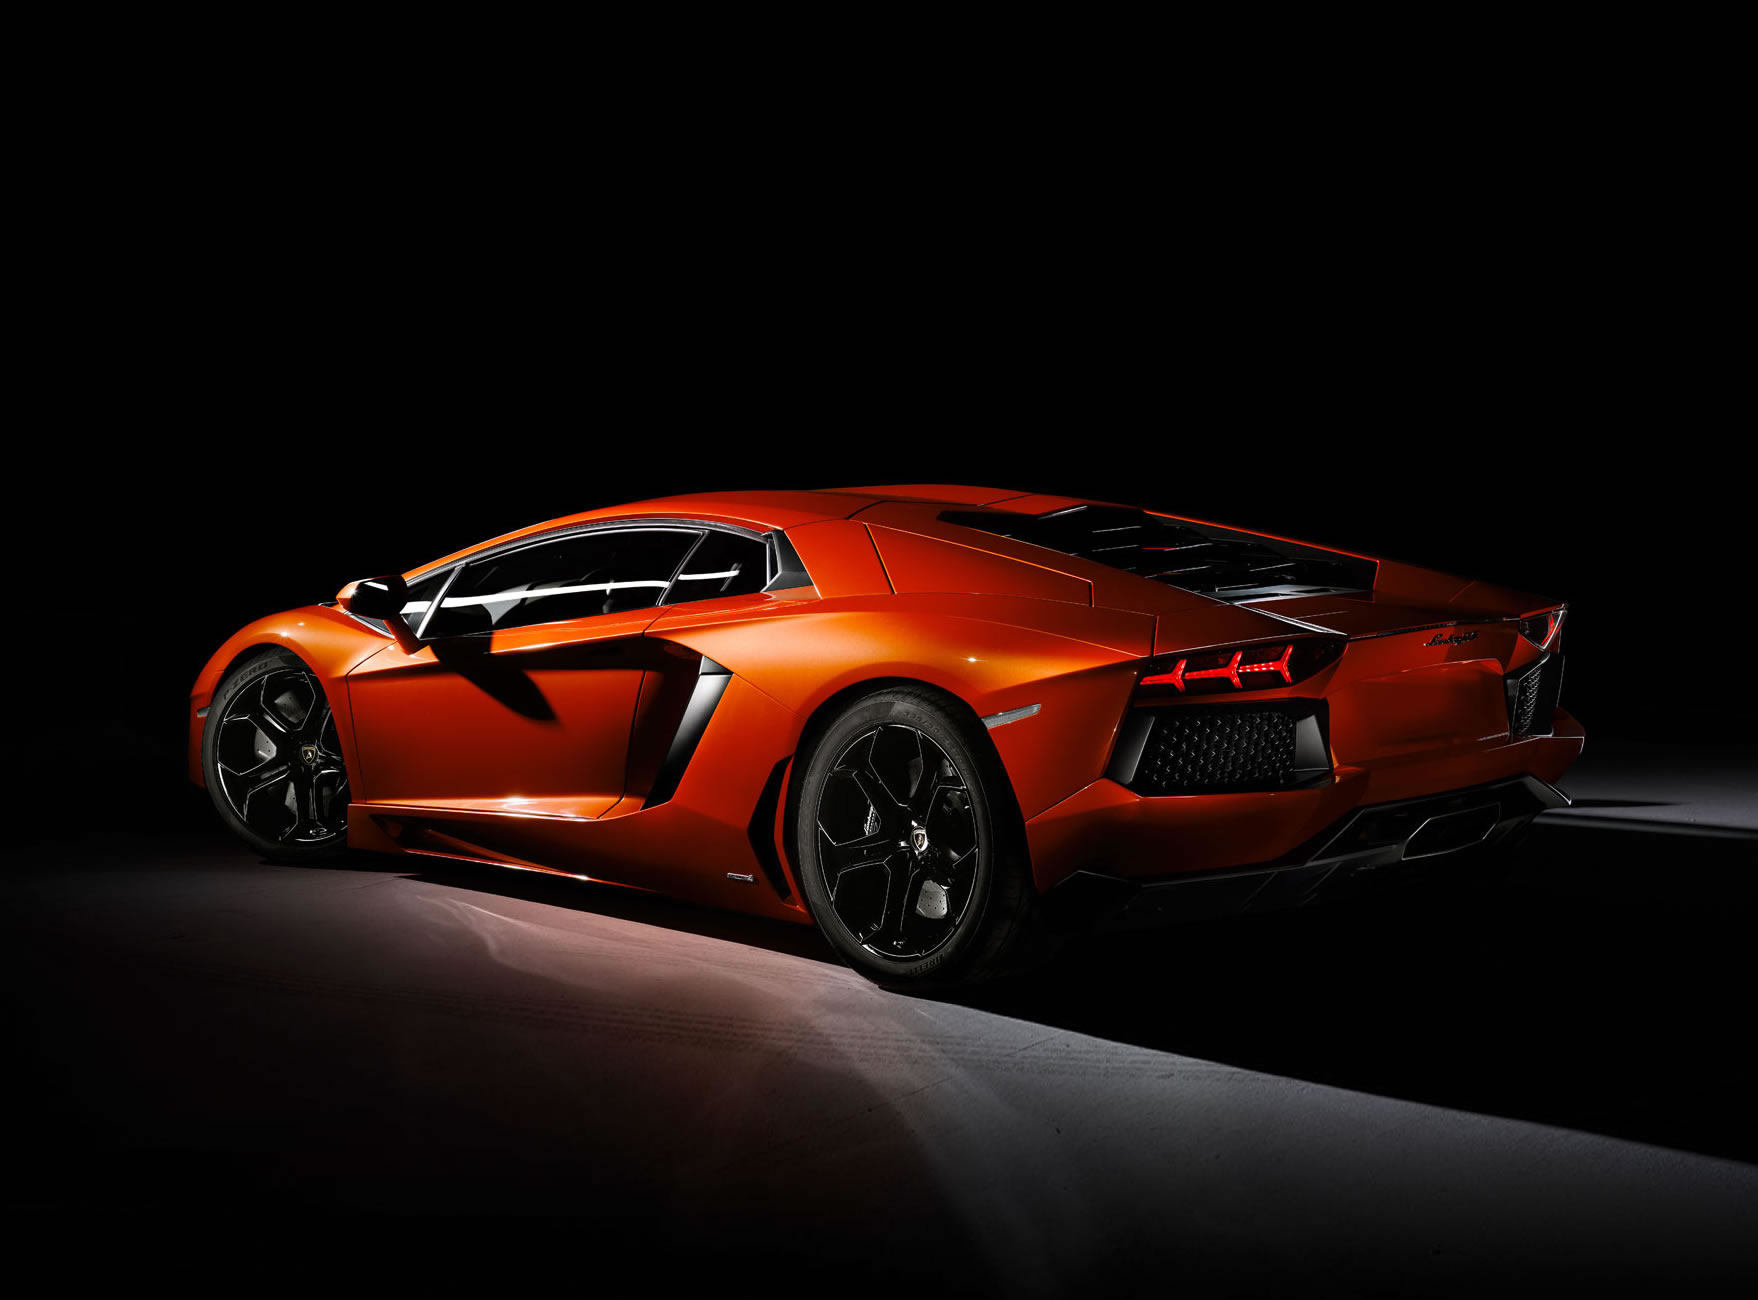 2014 lamborghini aventador lp 700 4 rear photo arancio argos pearl effect size 1758 x 1300. Black Bedroom Furniture Sets. Home Design Ideas